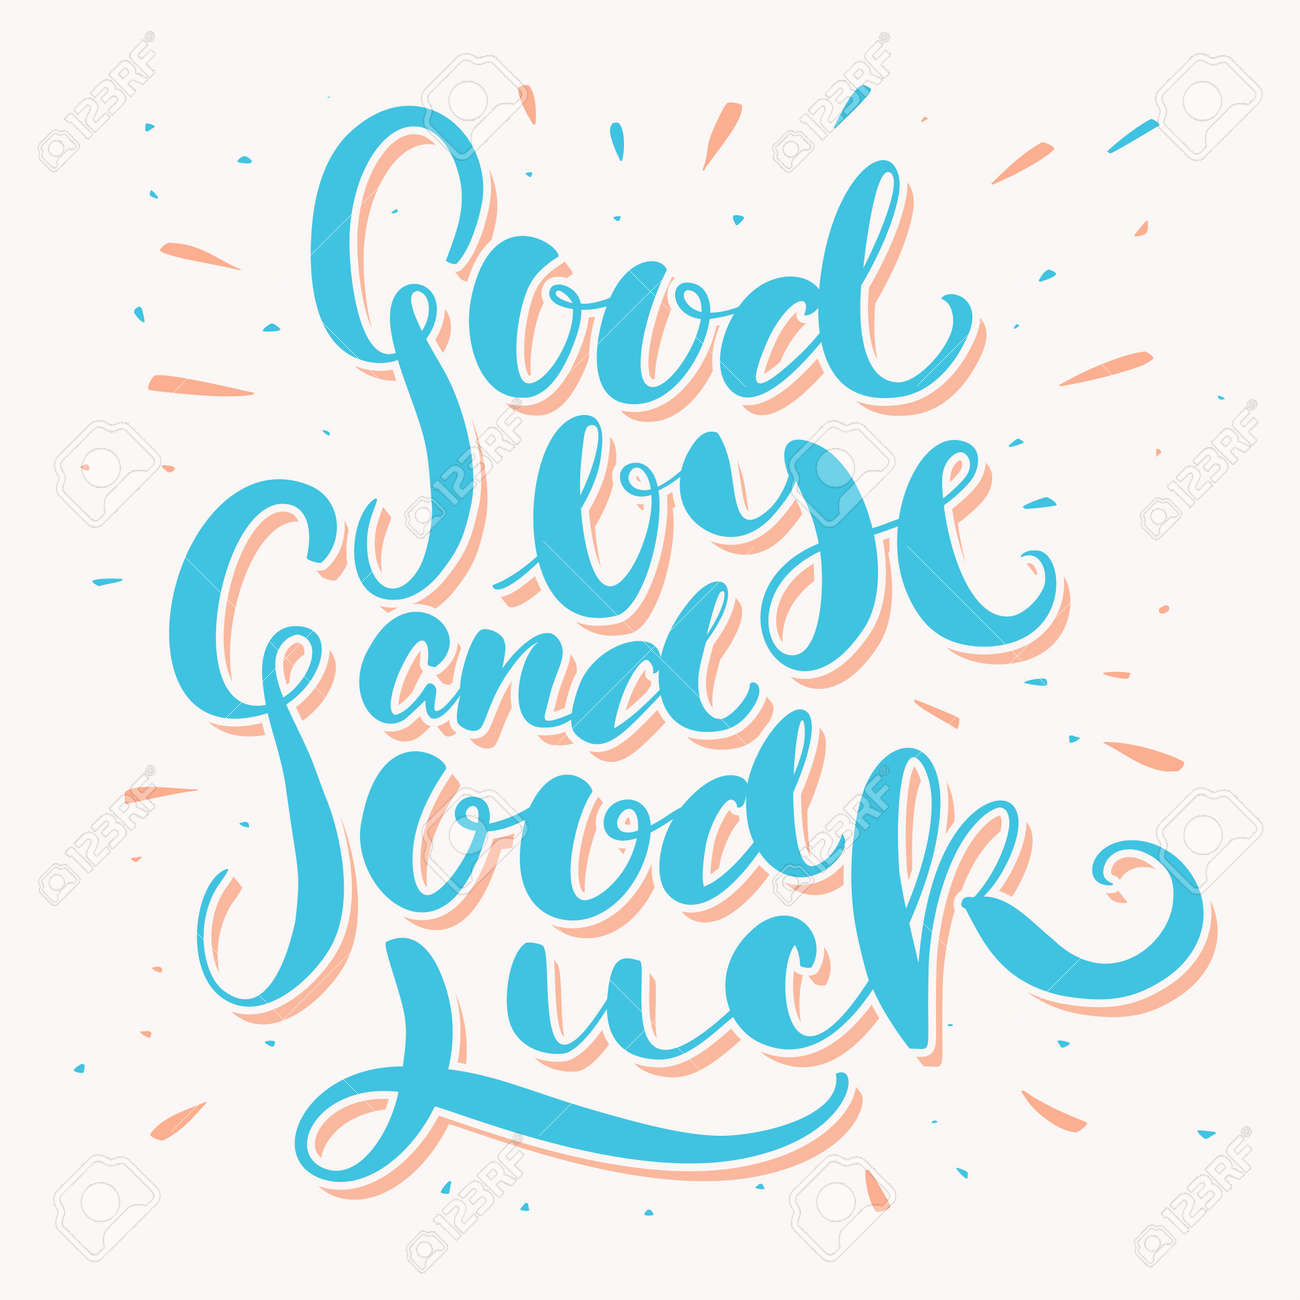 hight resolution of goodbye and good luck hand lettering vector hand drawn illustration illustration